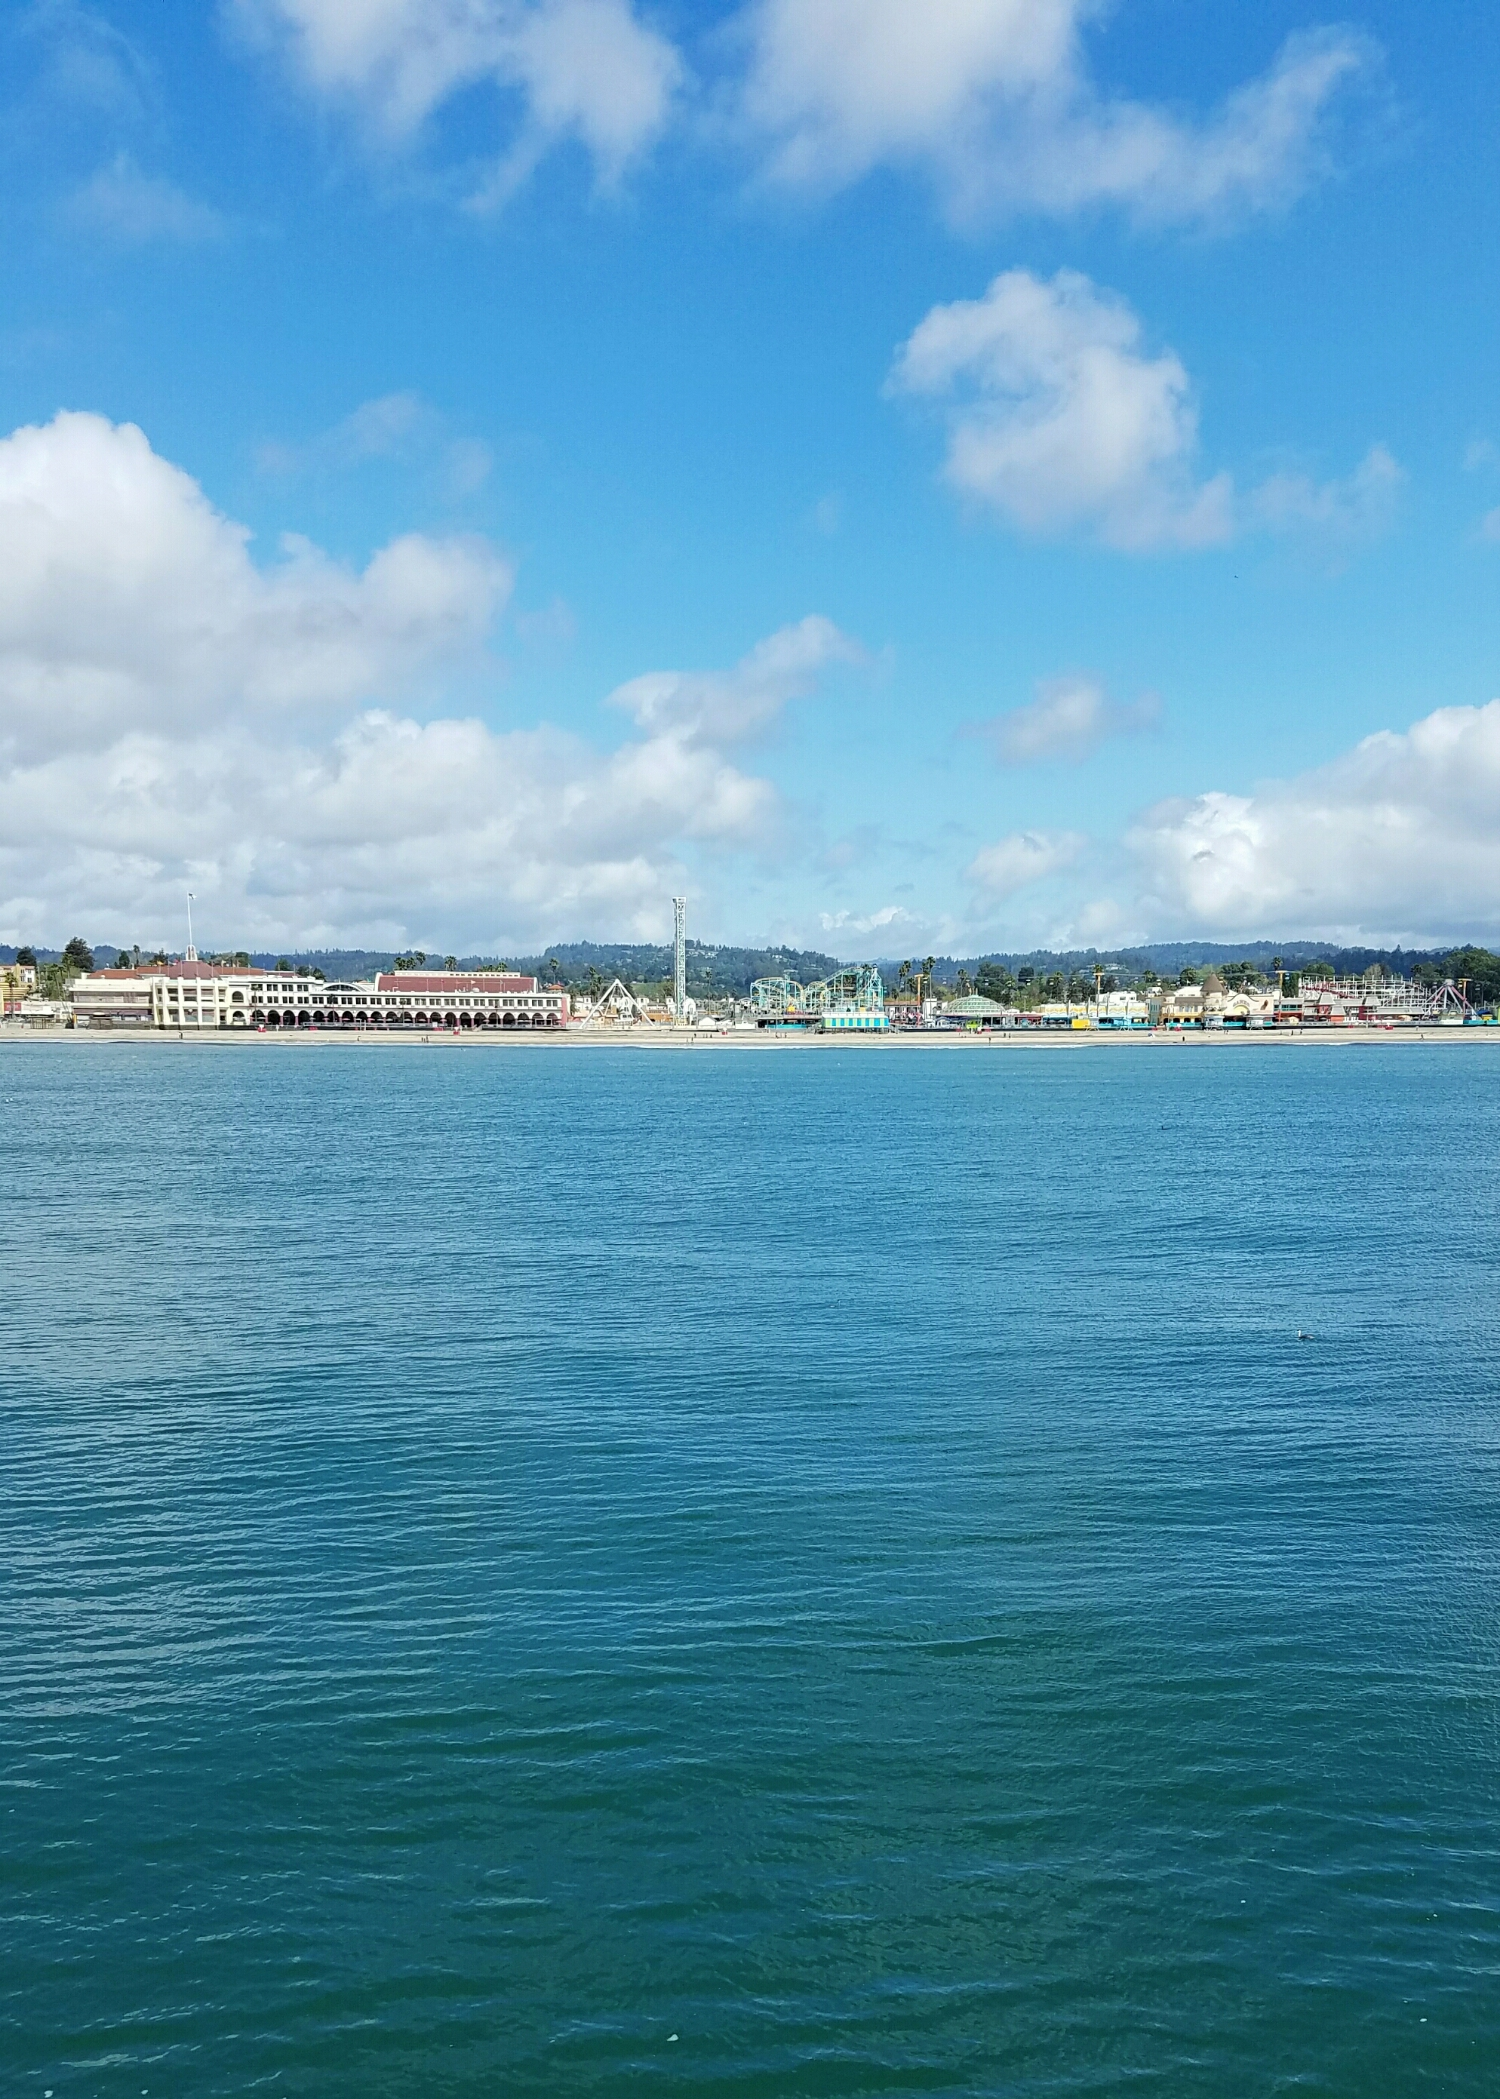 The view of the Santa Cruz boardwalk and beach from the wharf.